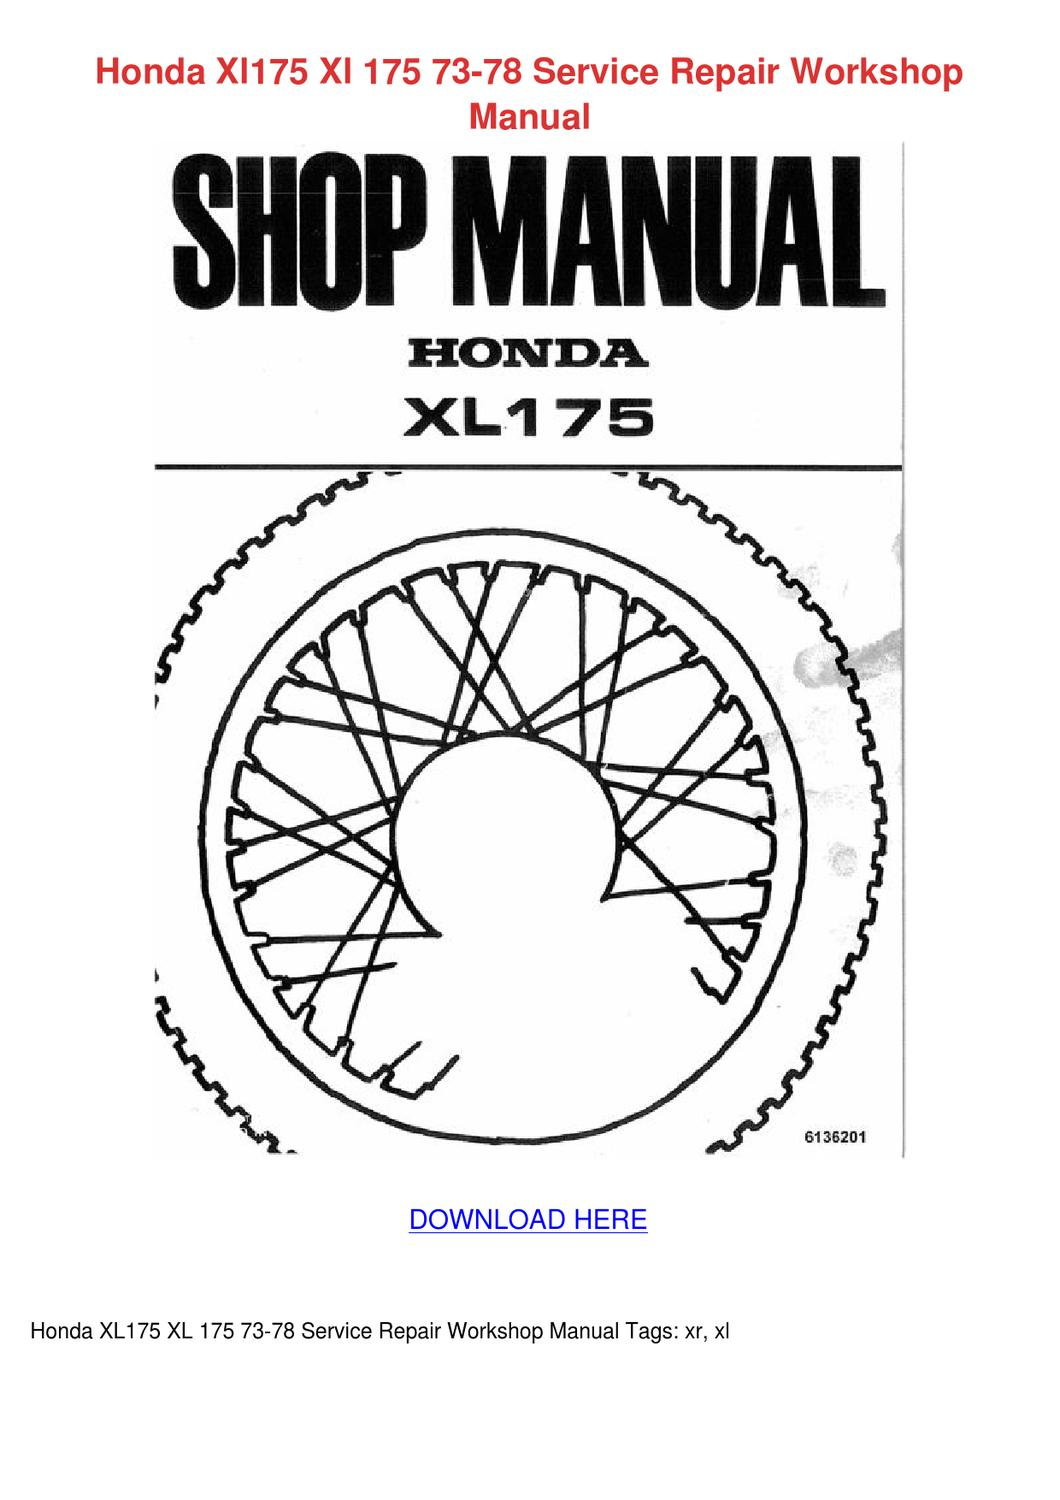 cbr 600 f2 manual free download